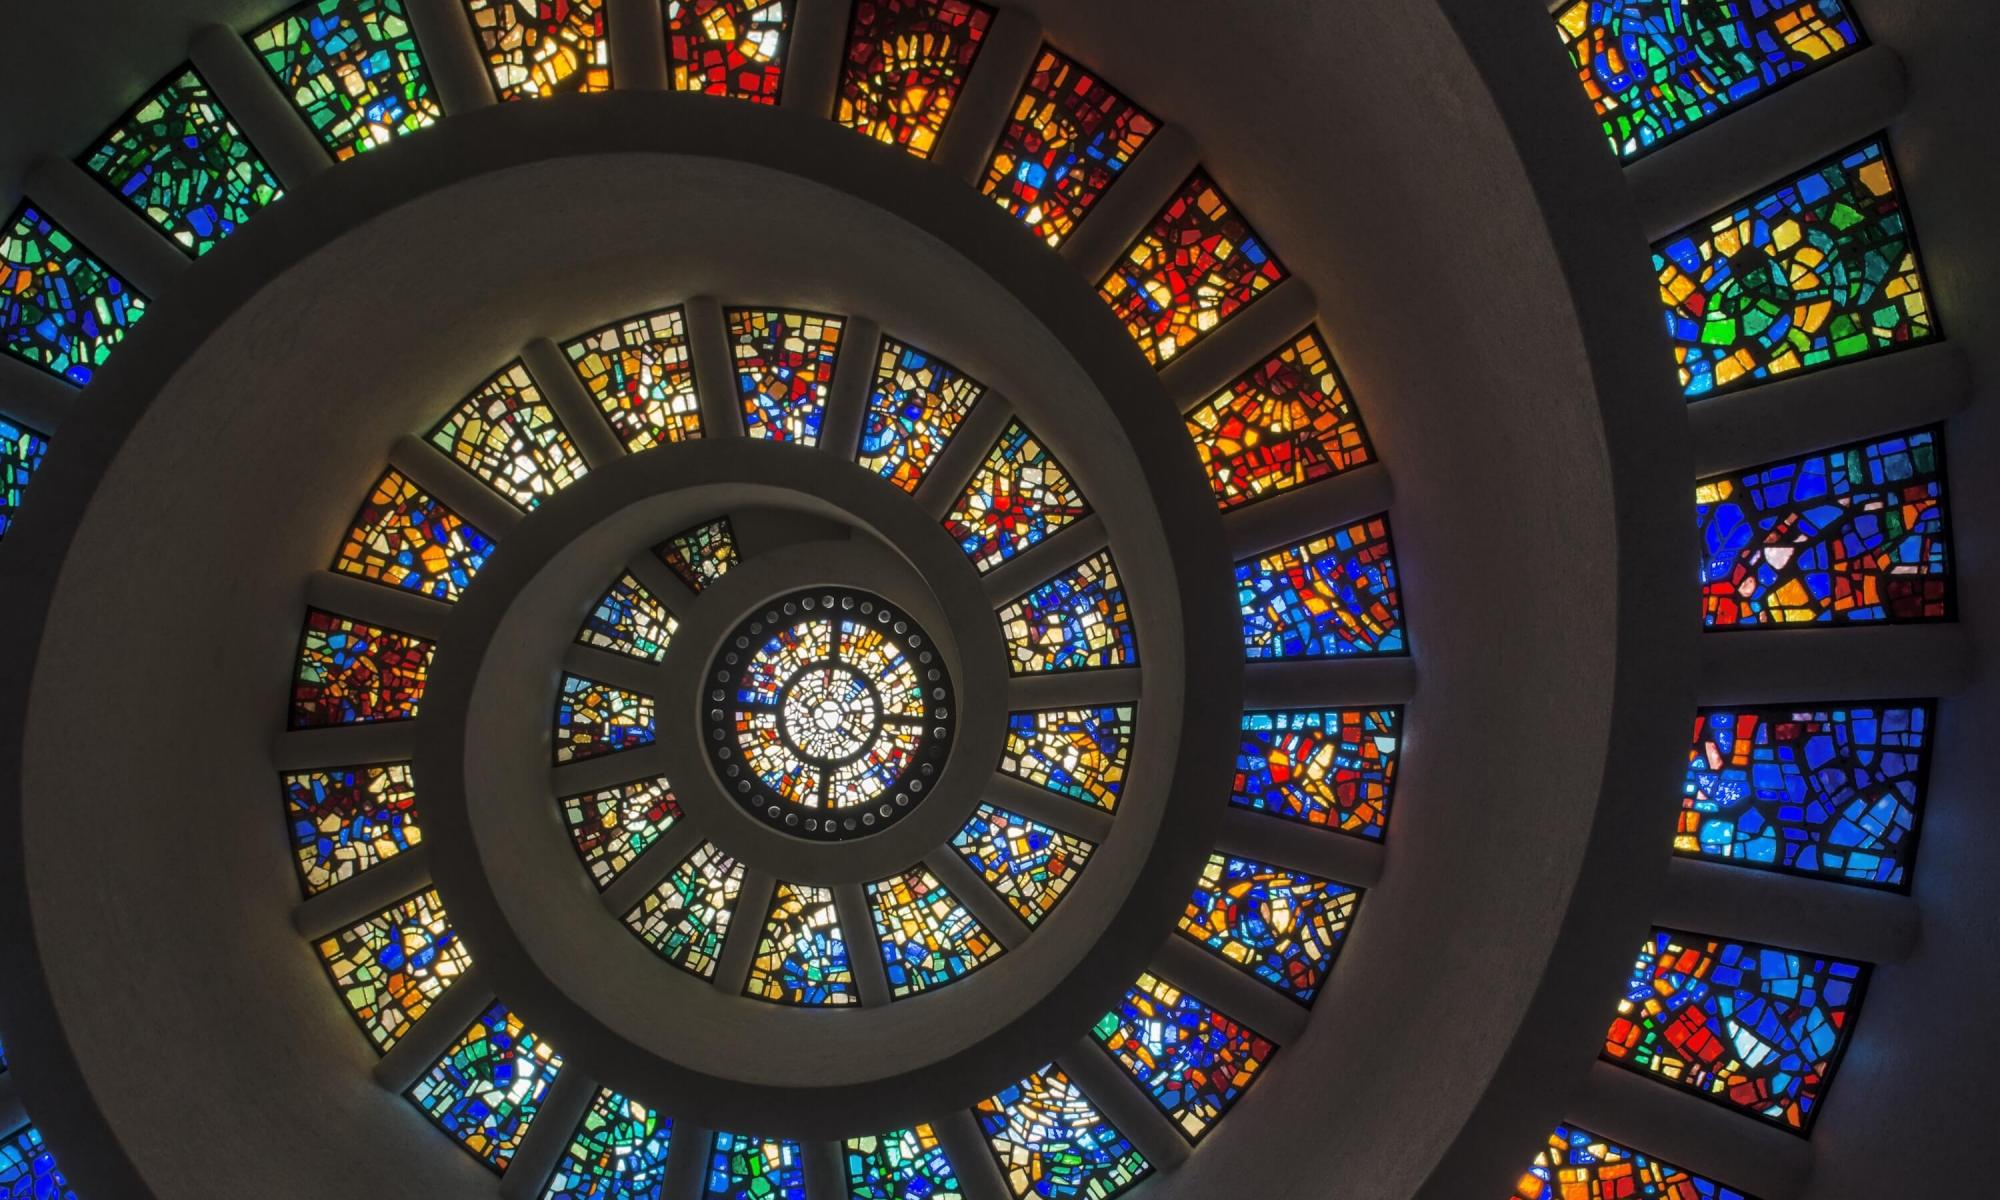 stained glass ceiling in a spiral design